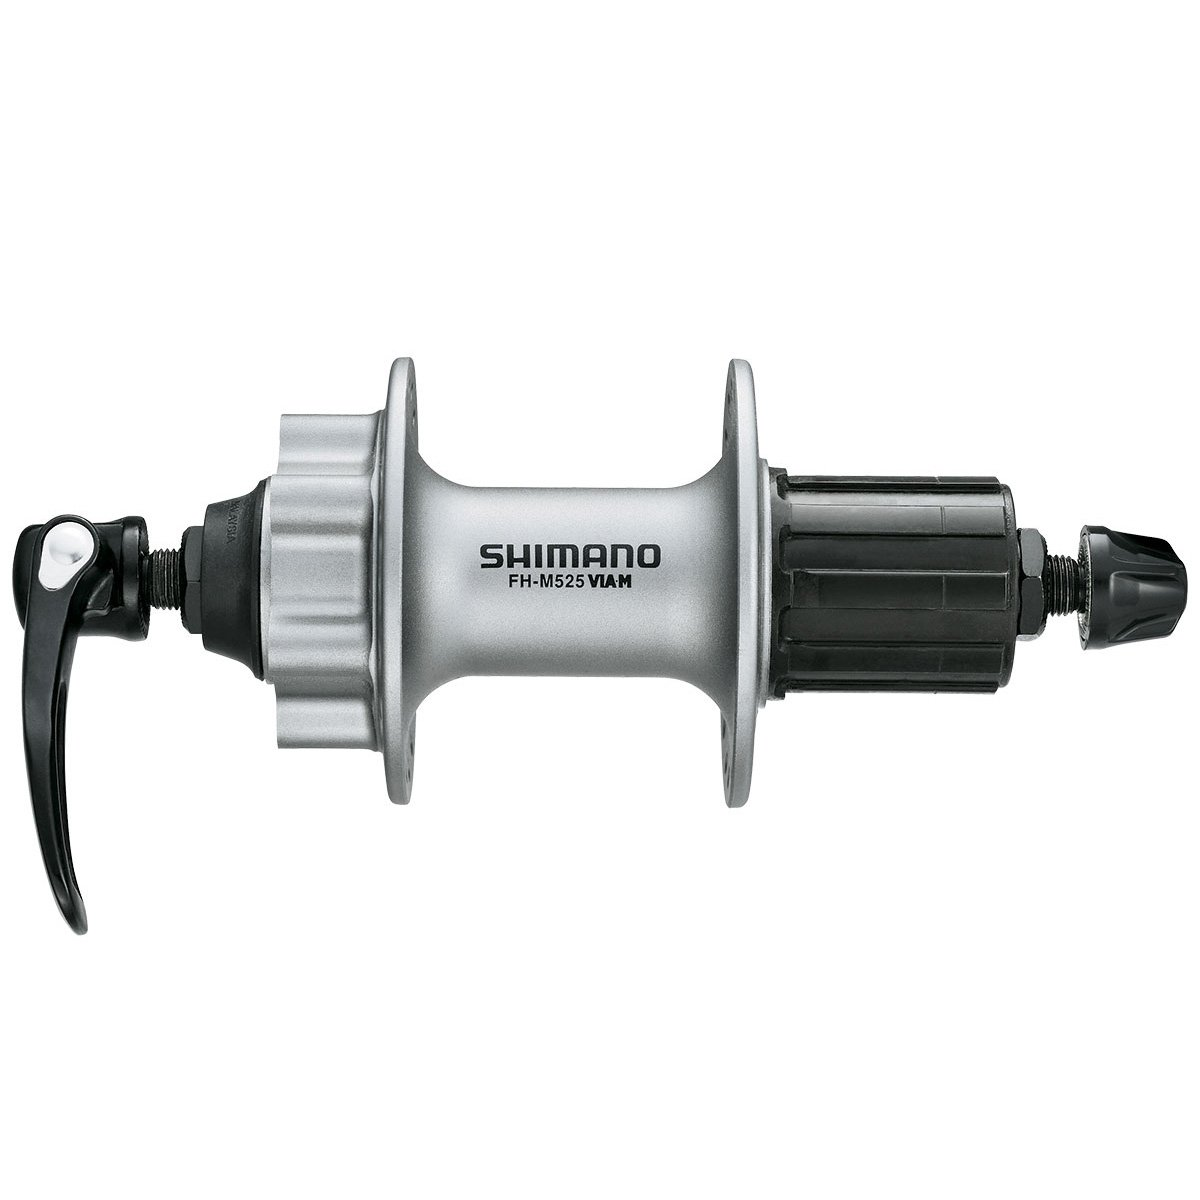 SHIMANO Deore M590 Mountain Bicycle Freehub - FH-M525